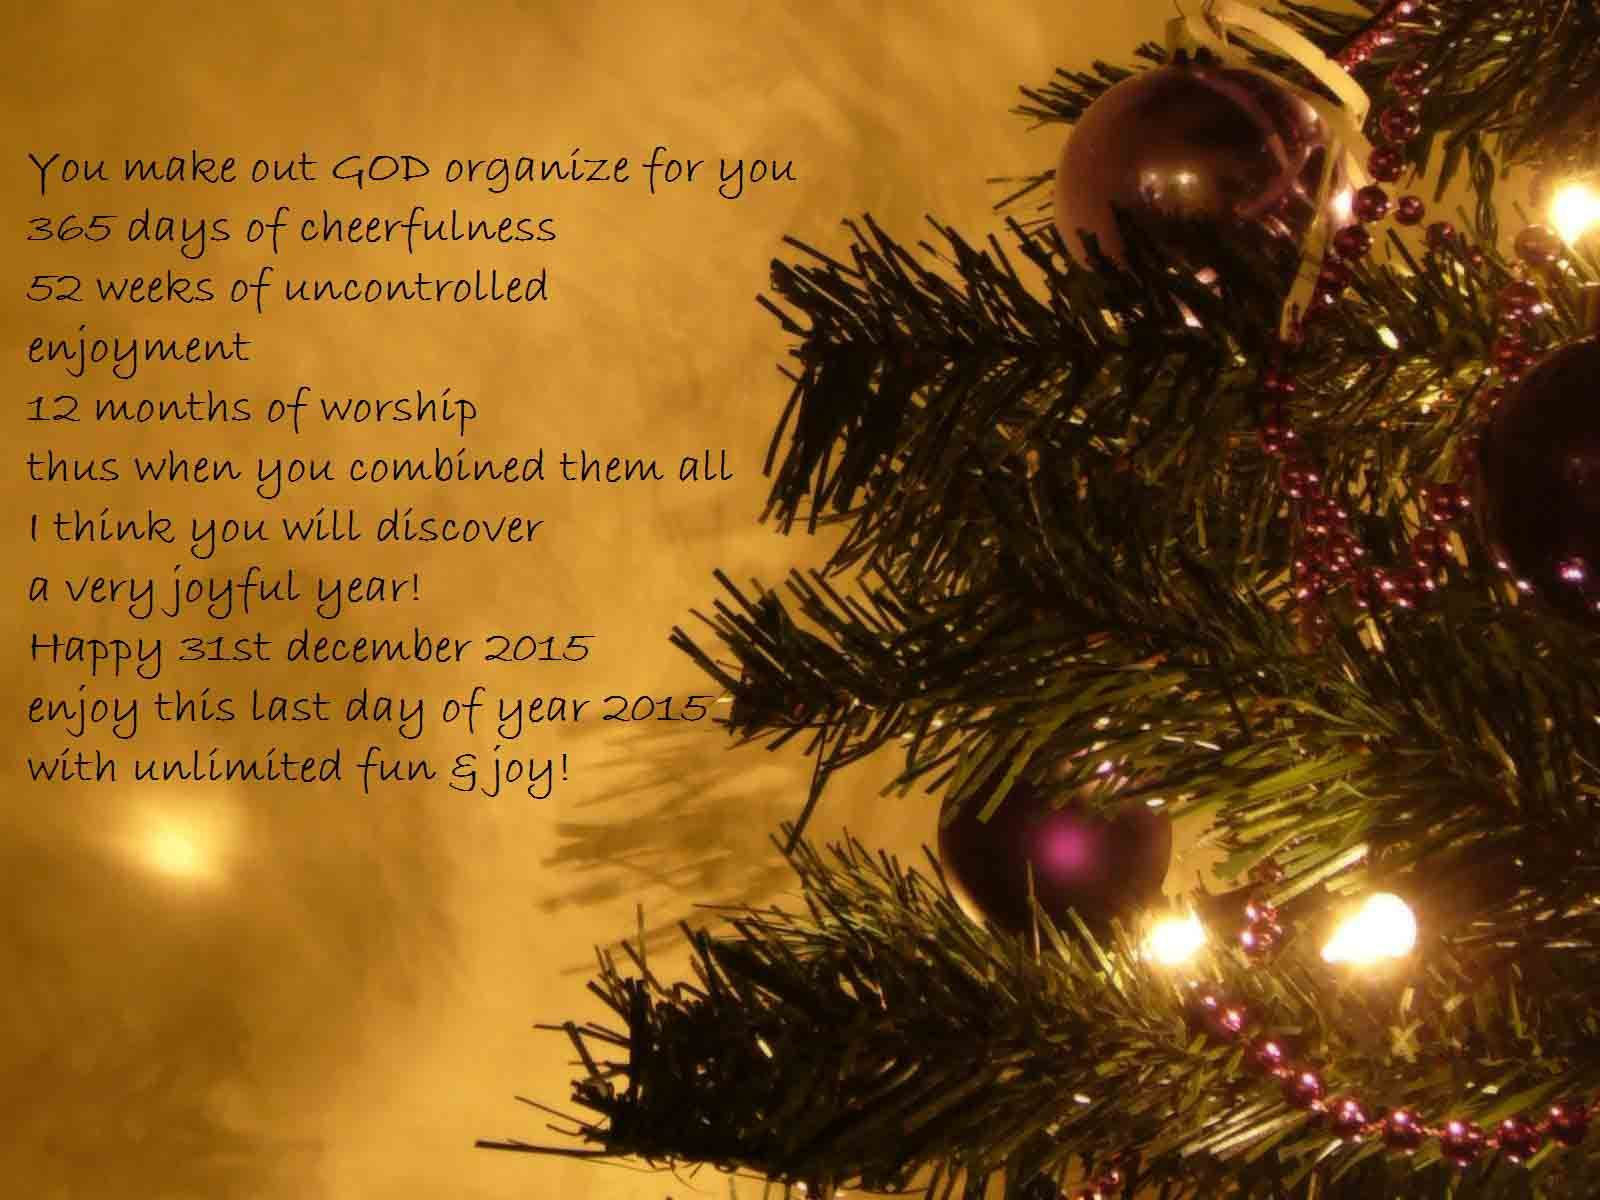 31st December 2015 Sms Wallpaper Shayari Images Wishes Free Happy New Year Sms Pics Christmas Wallpaper Free Merry Christmas Baby Merry Christmas Wishes